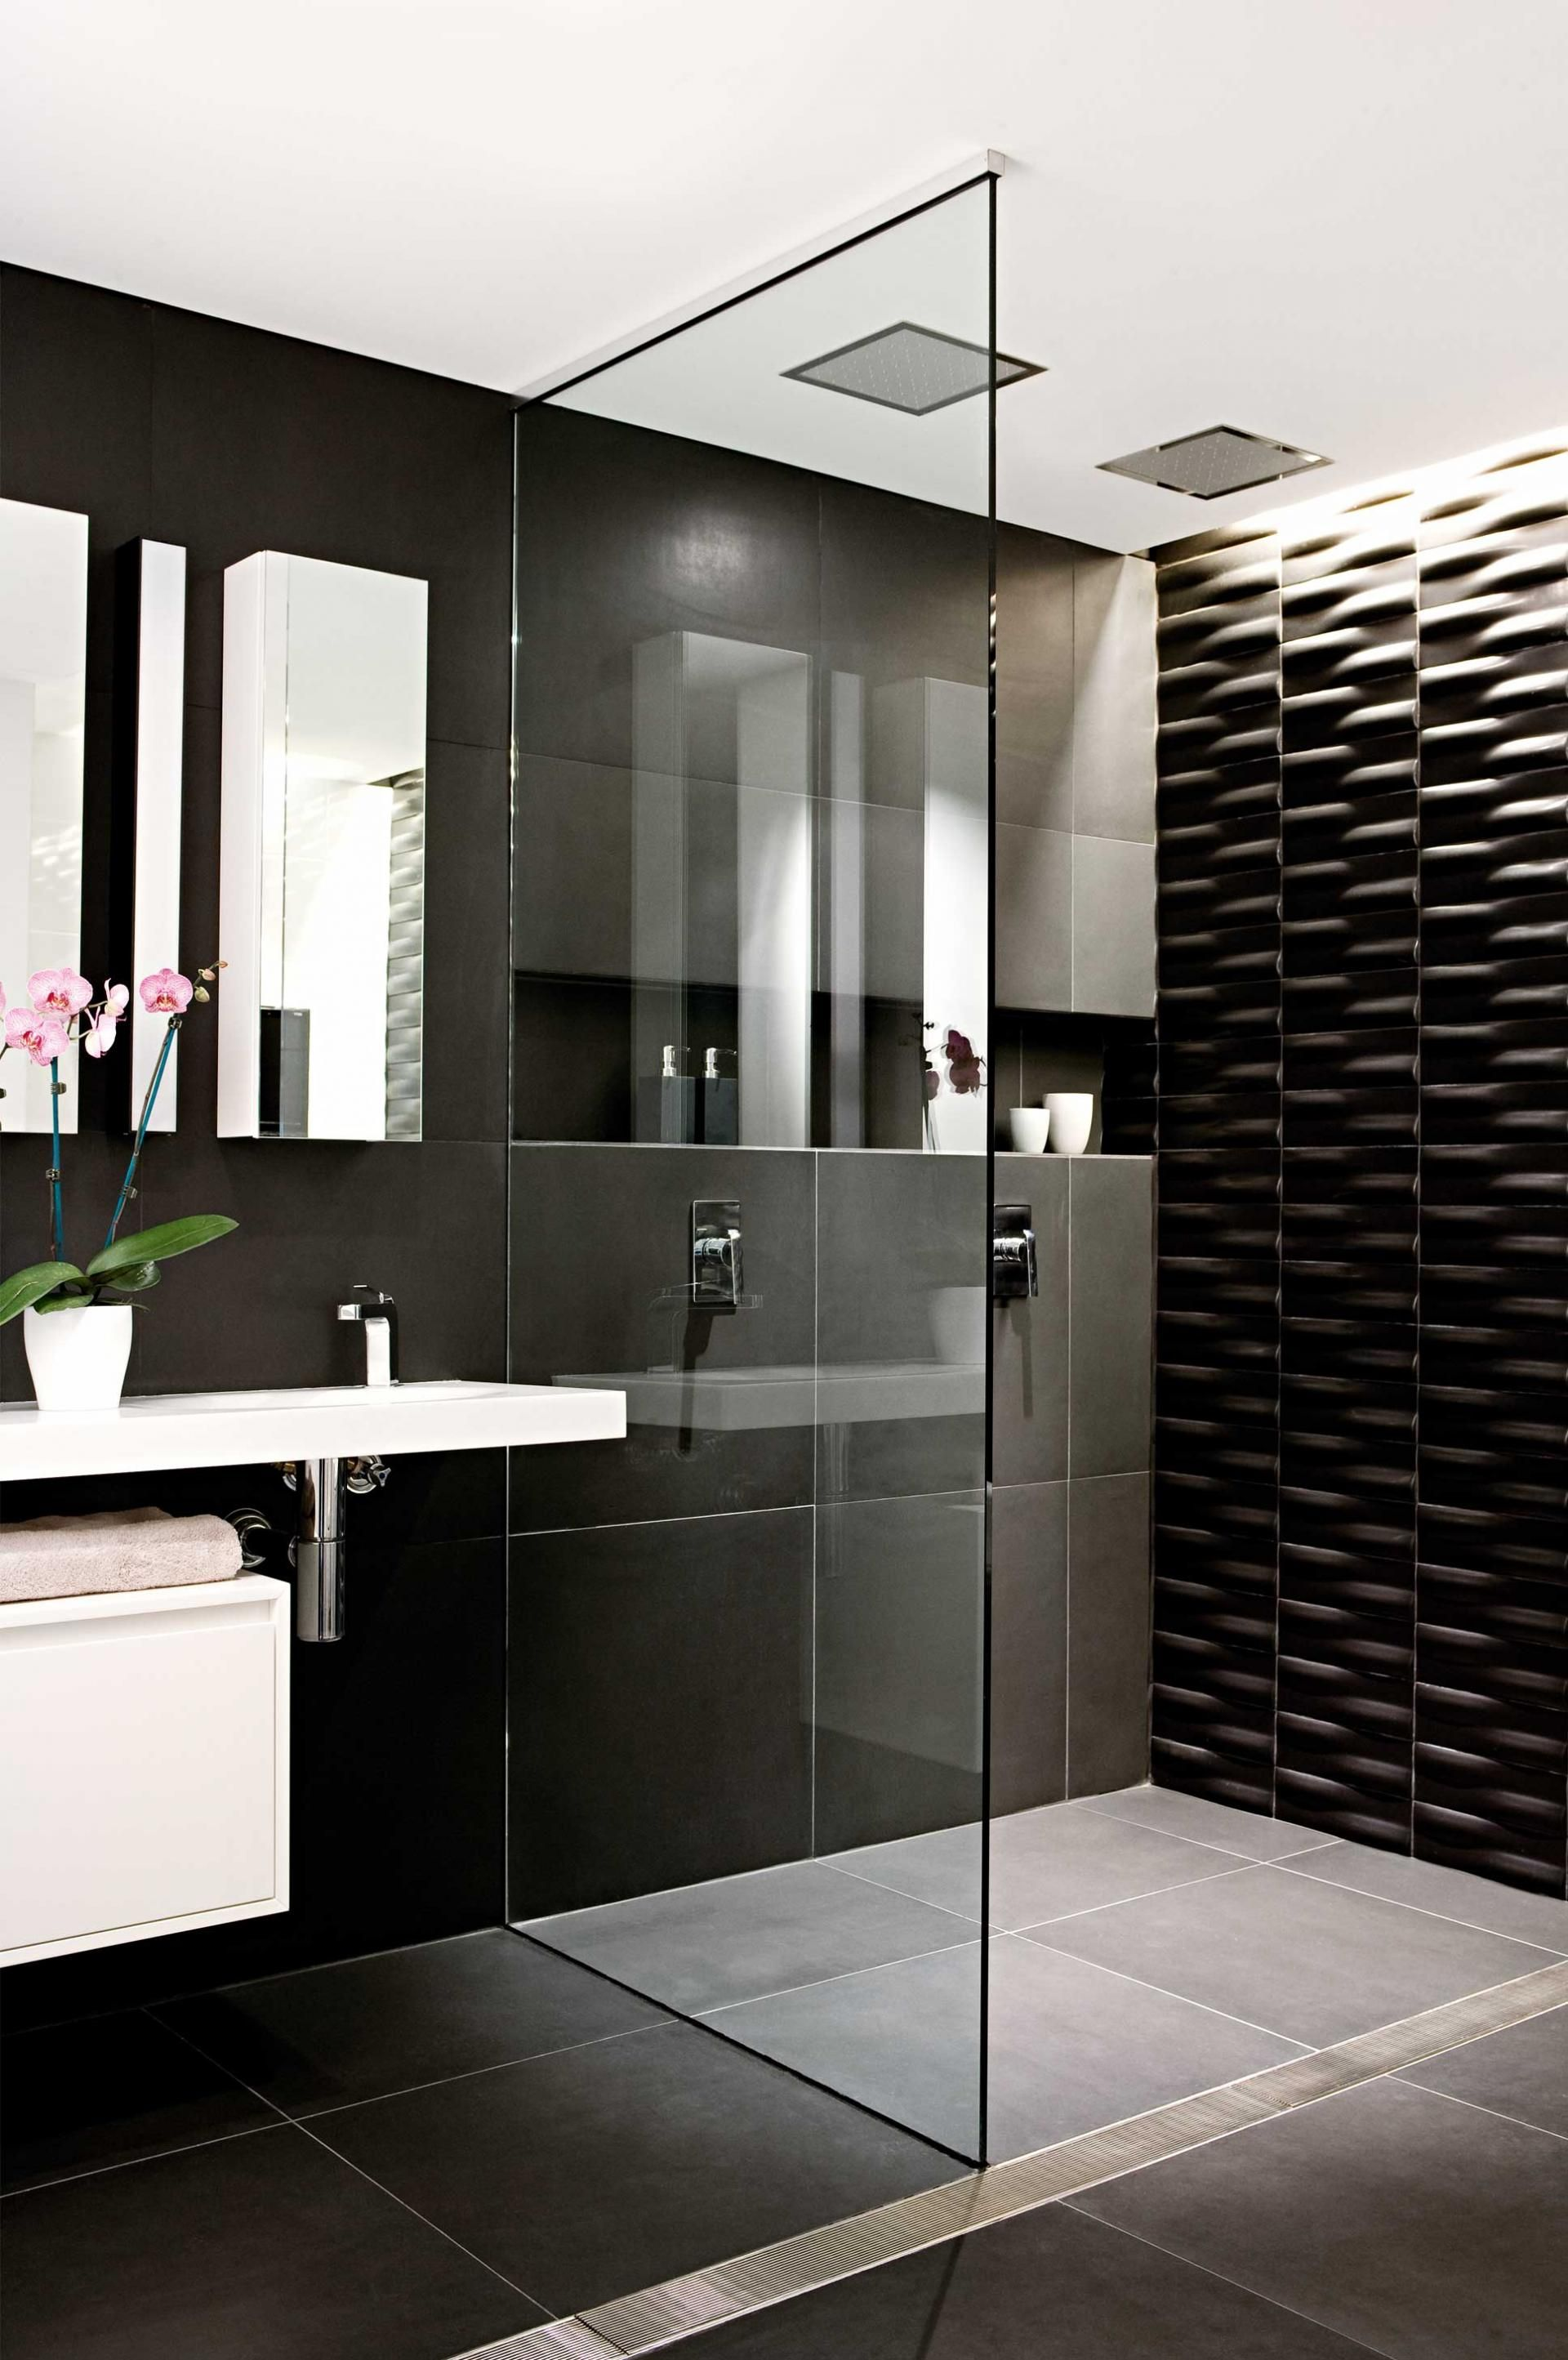 10 black and white bathrooms. Styling by Vanessa Colyer Tay ... on black and kitchen designs, black white grey bathroom, black ceiling in bathroom, black and white bath, black and white pool, pretty black and white designs, black and white decorative design, black bathroom ideas, black themed bathrooms, black and white small kitchen, black and white dining room design, black and shower designs, black and white furniture design, black white bathroom wallpaper, black and white wallpaper designs, black and white photography galleries, black and white living room, bathtub designs, black and white tile designs, black and white shower curtain,